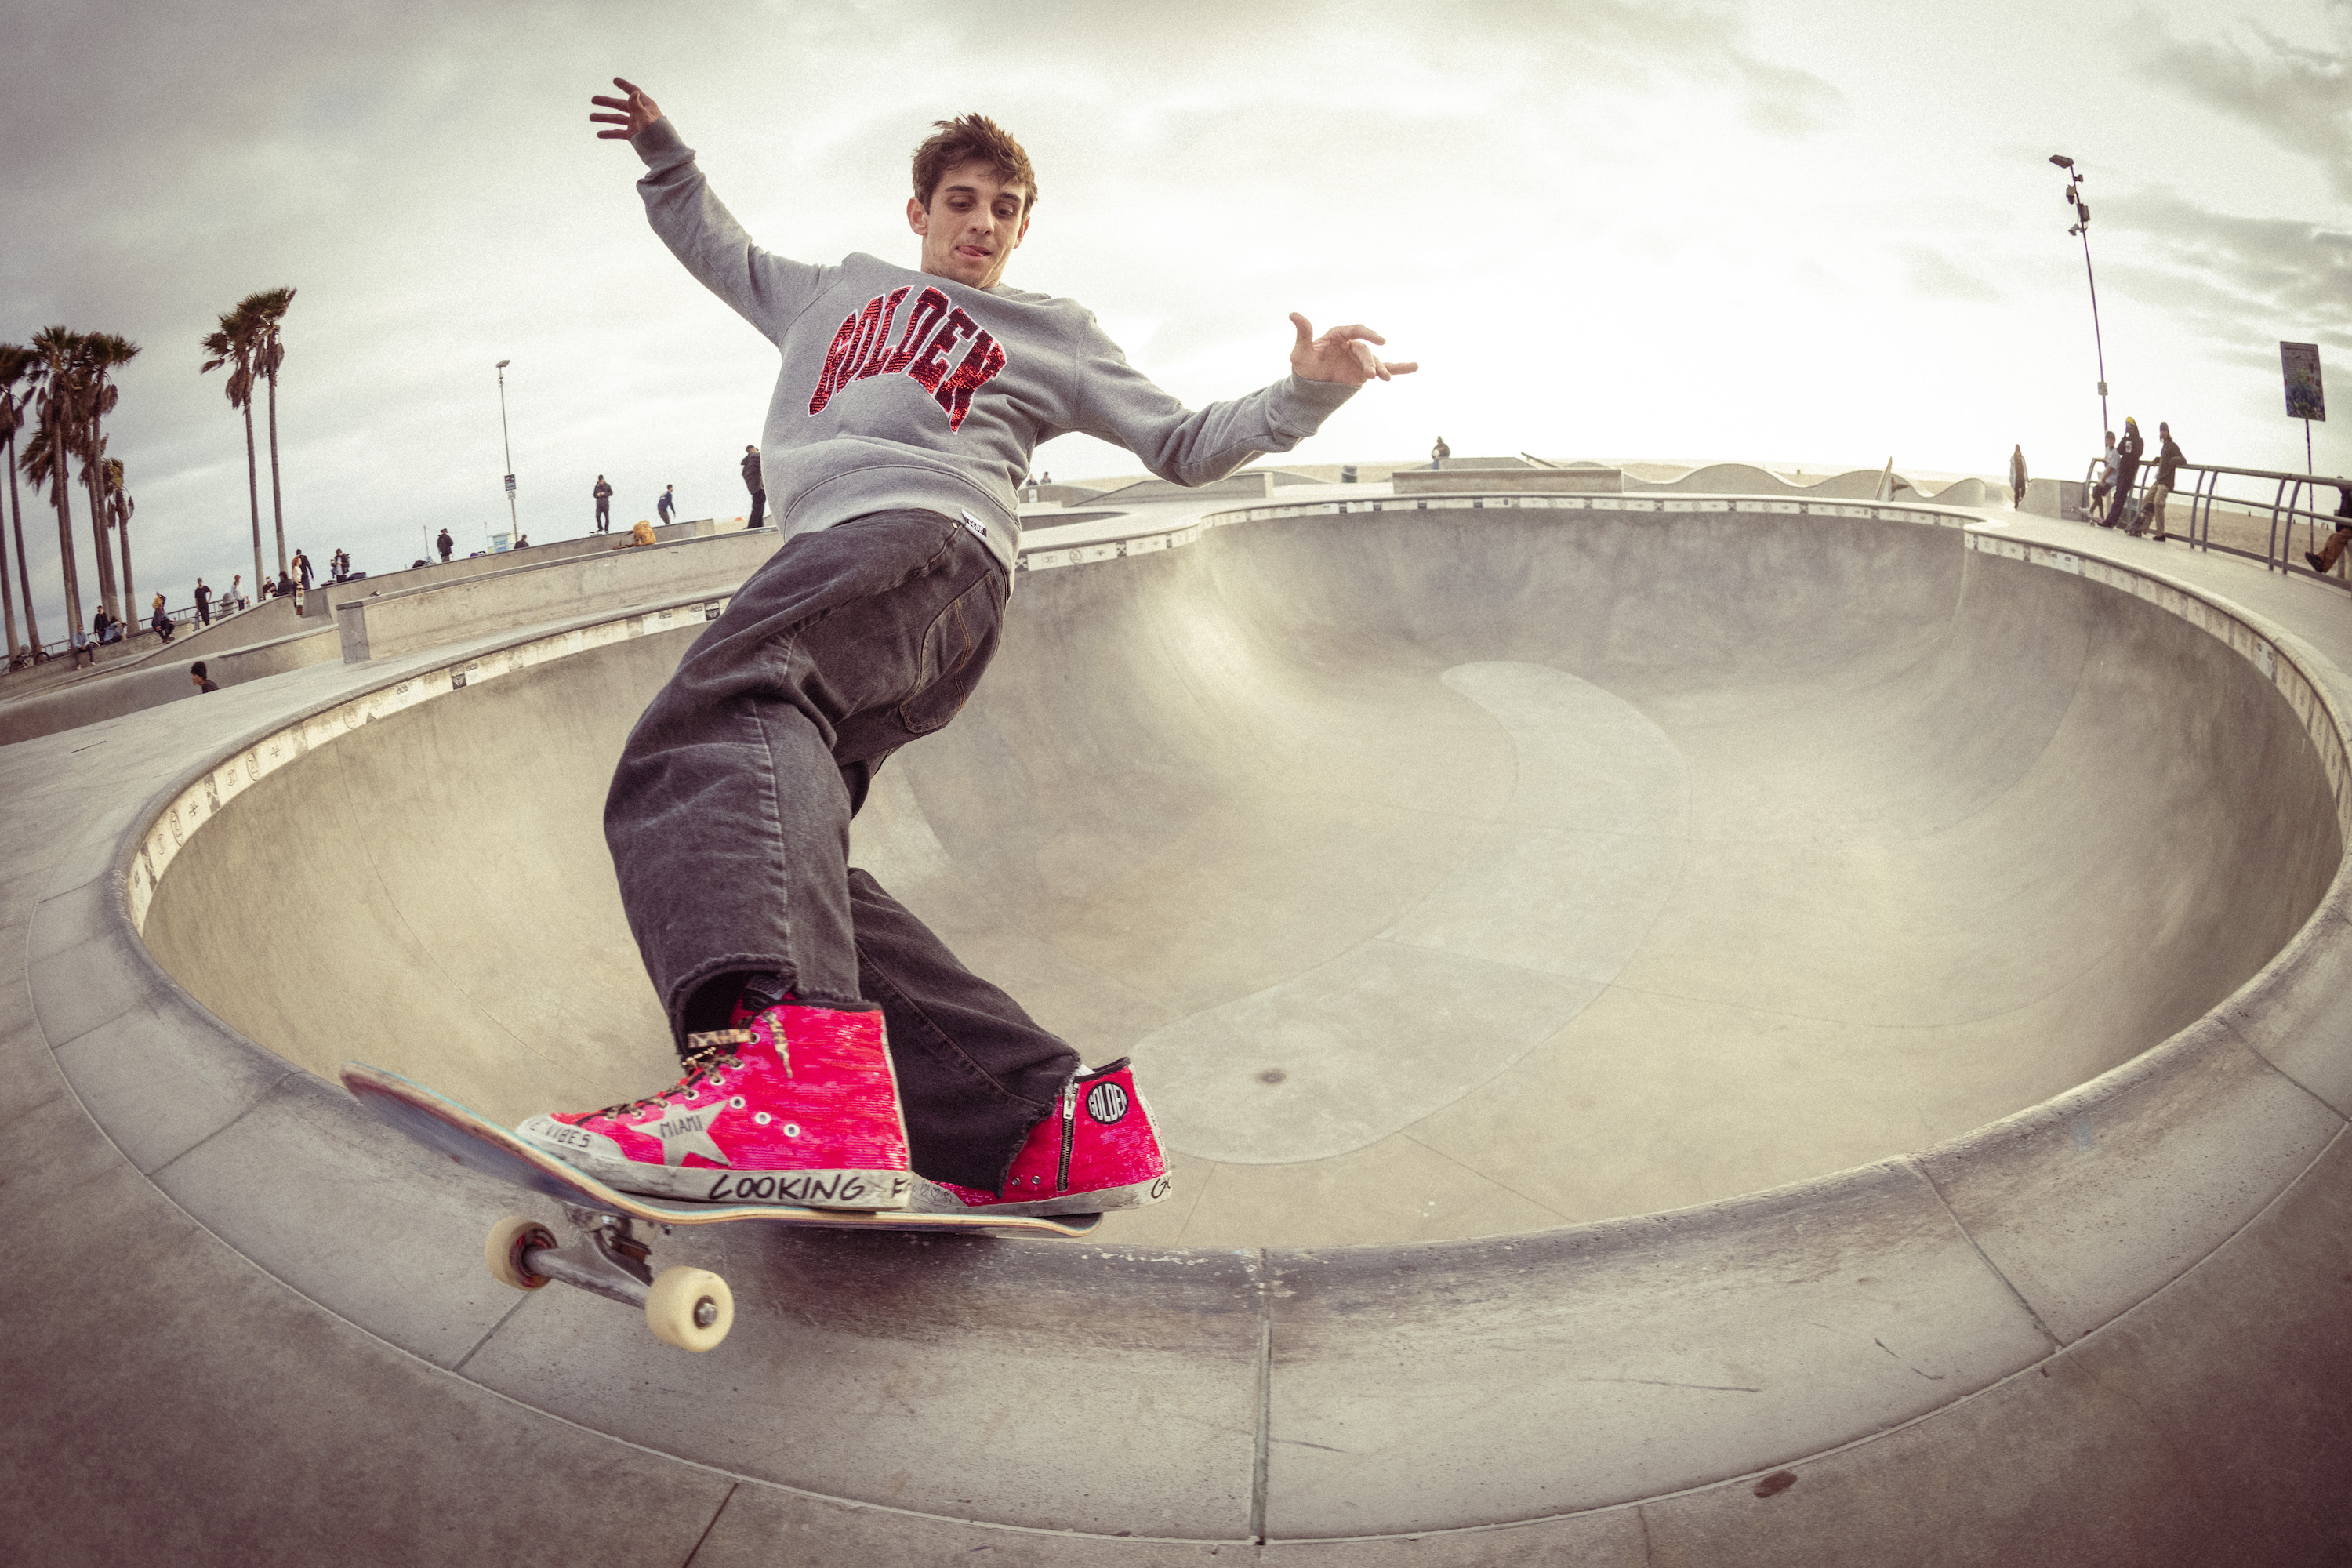 Golden Goose is partnering with U.S. skater Cory Juneau for the Olympic Games.